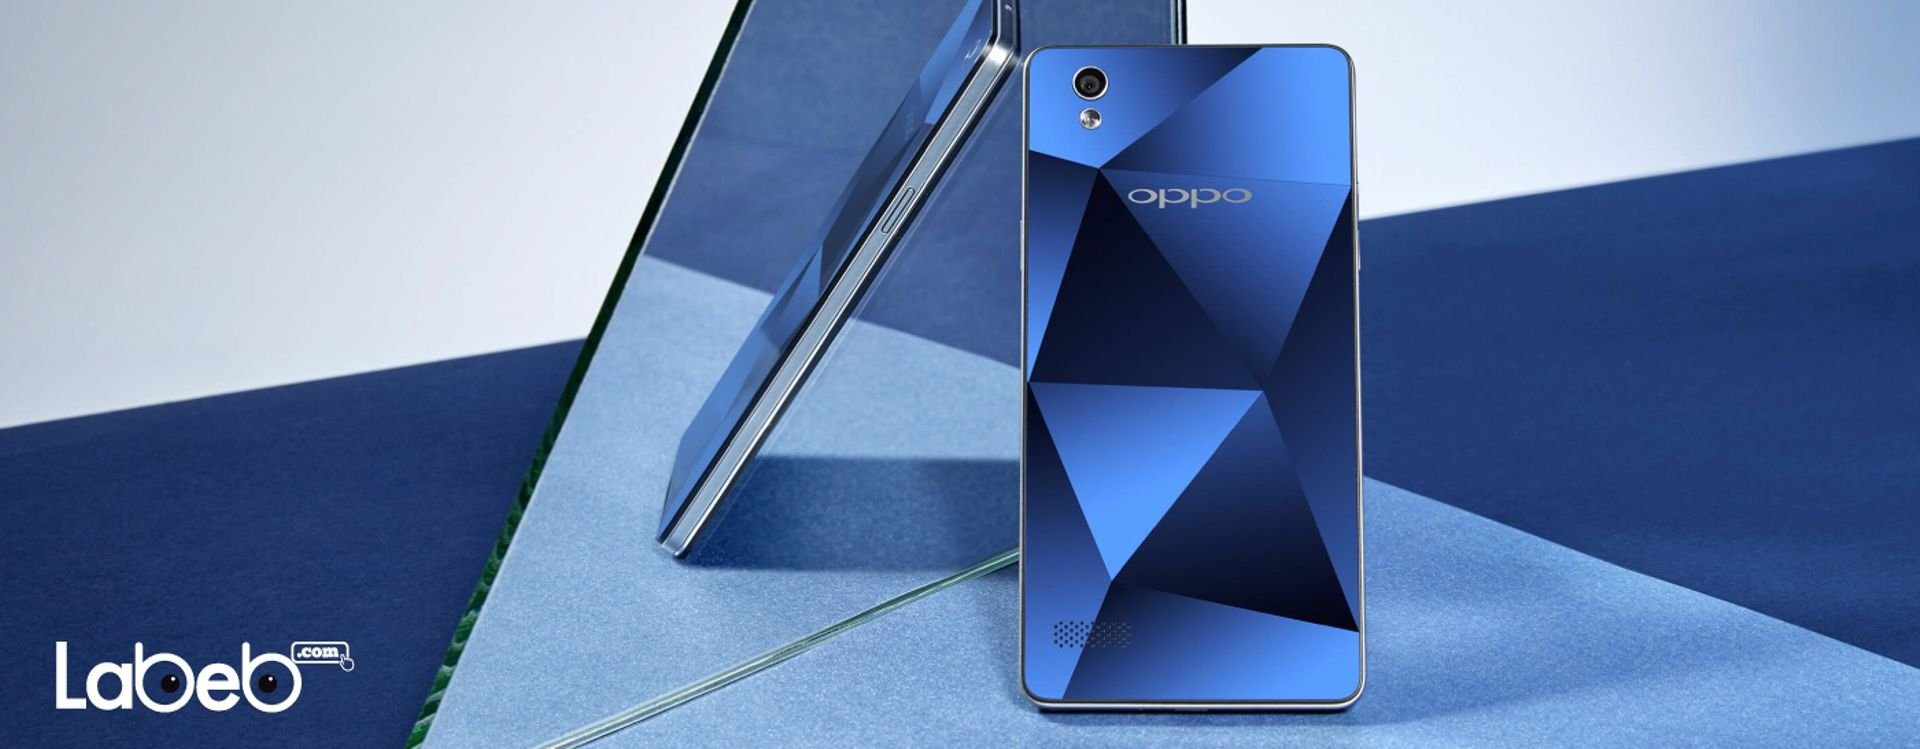 What Differentiate Oppo Mirror 5 is the Back Cover that Looks Like Diamonds.